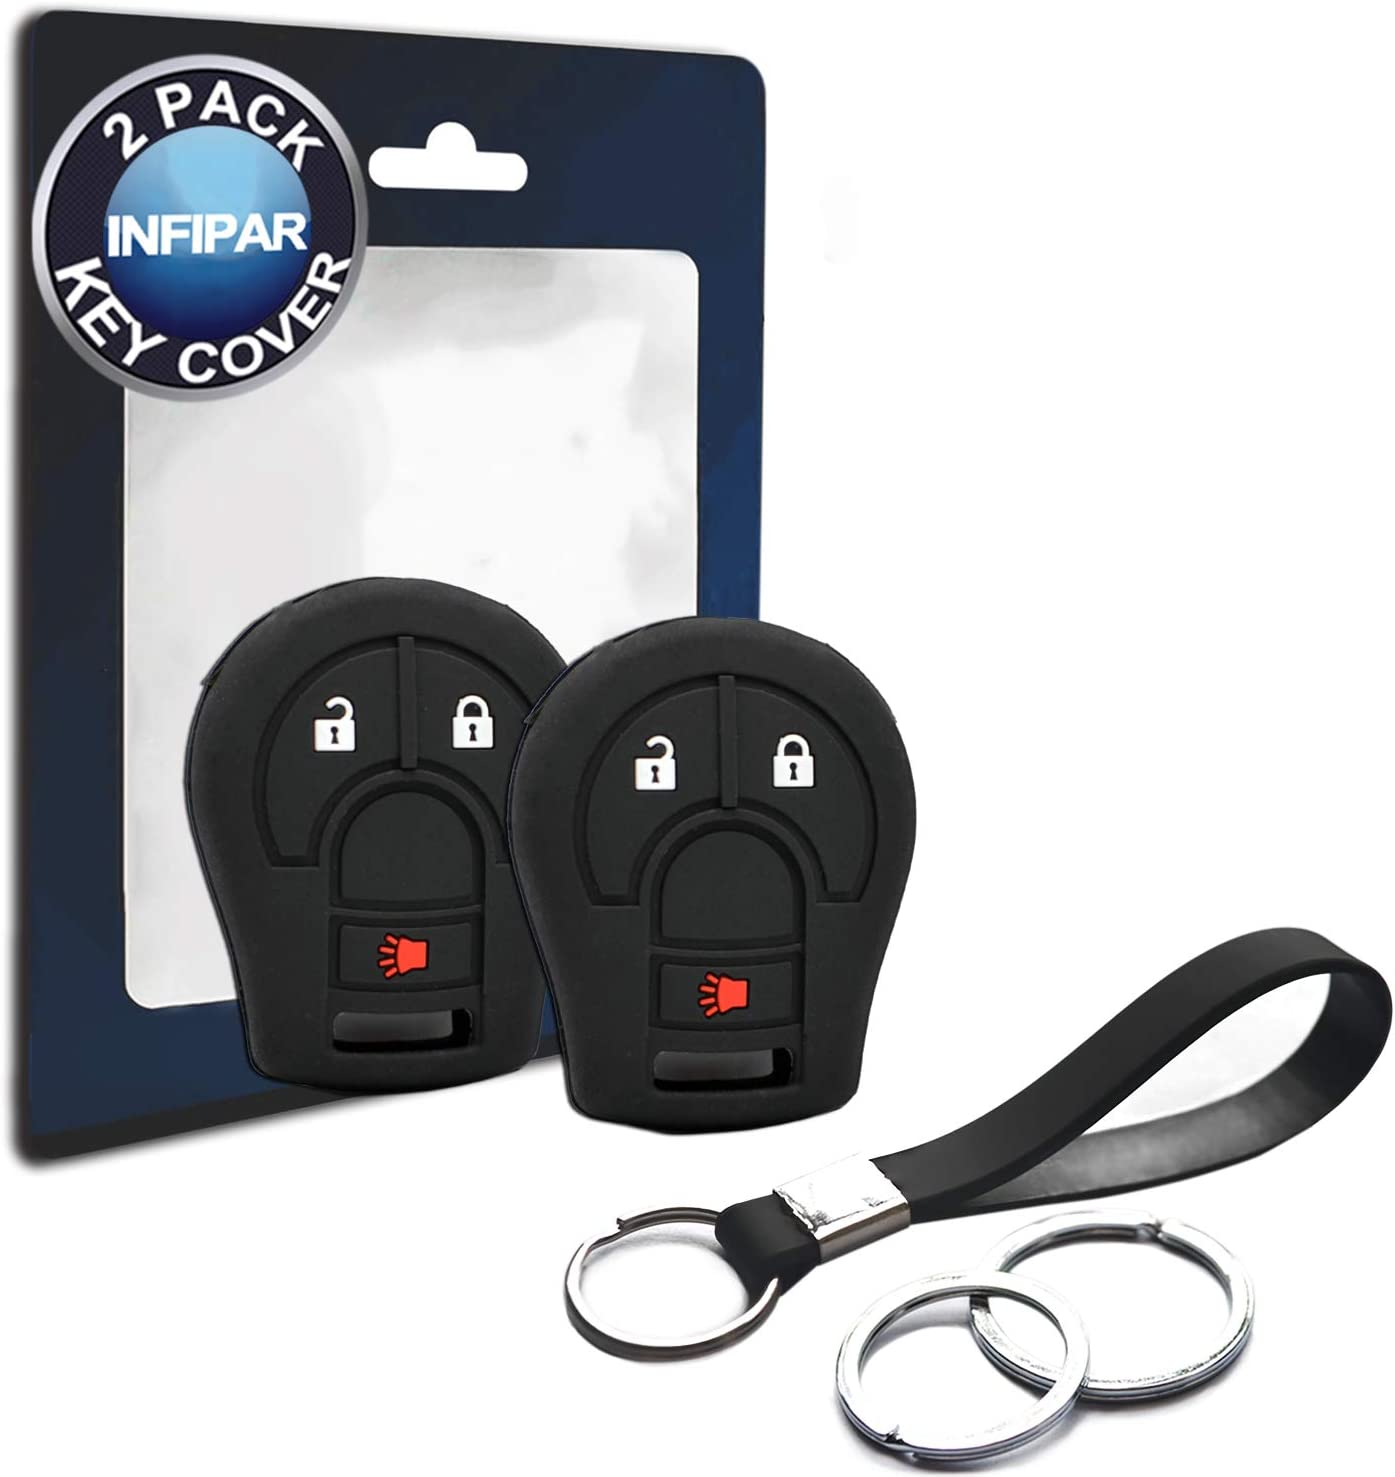 2pcs Compatible with Nissan Remote Head 3 Buttons Silicone FOB Key Case Cover Protector Keyless Remote Holder for Nissan Xterra Armada Cube Frontier Juke Murano Pathfinder Quest Rogue Sentra Titan